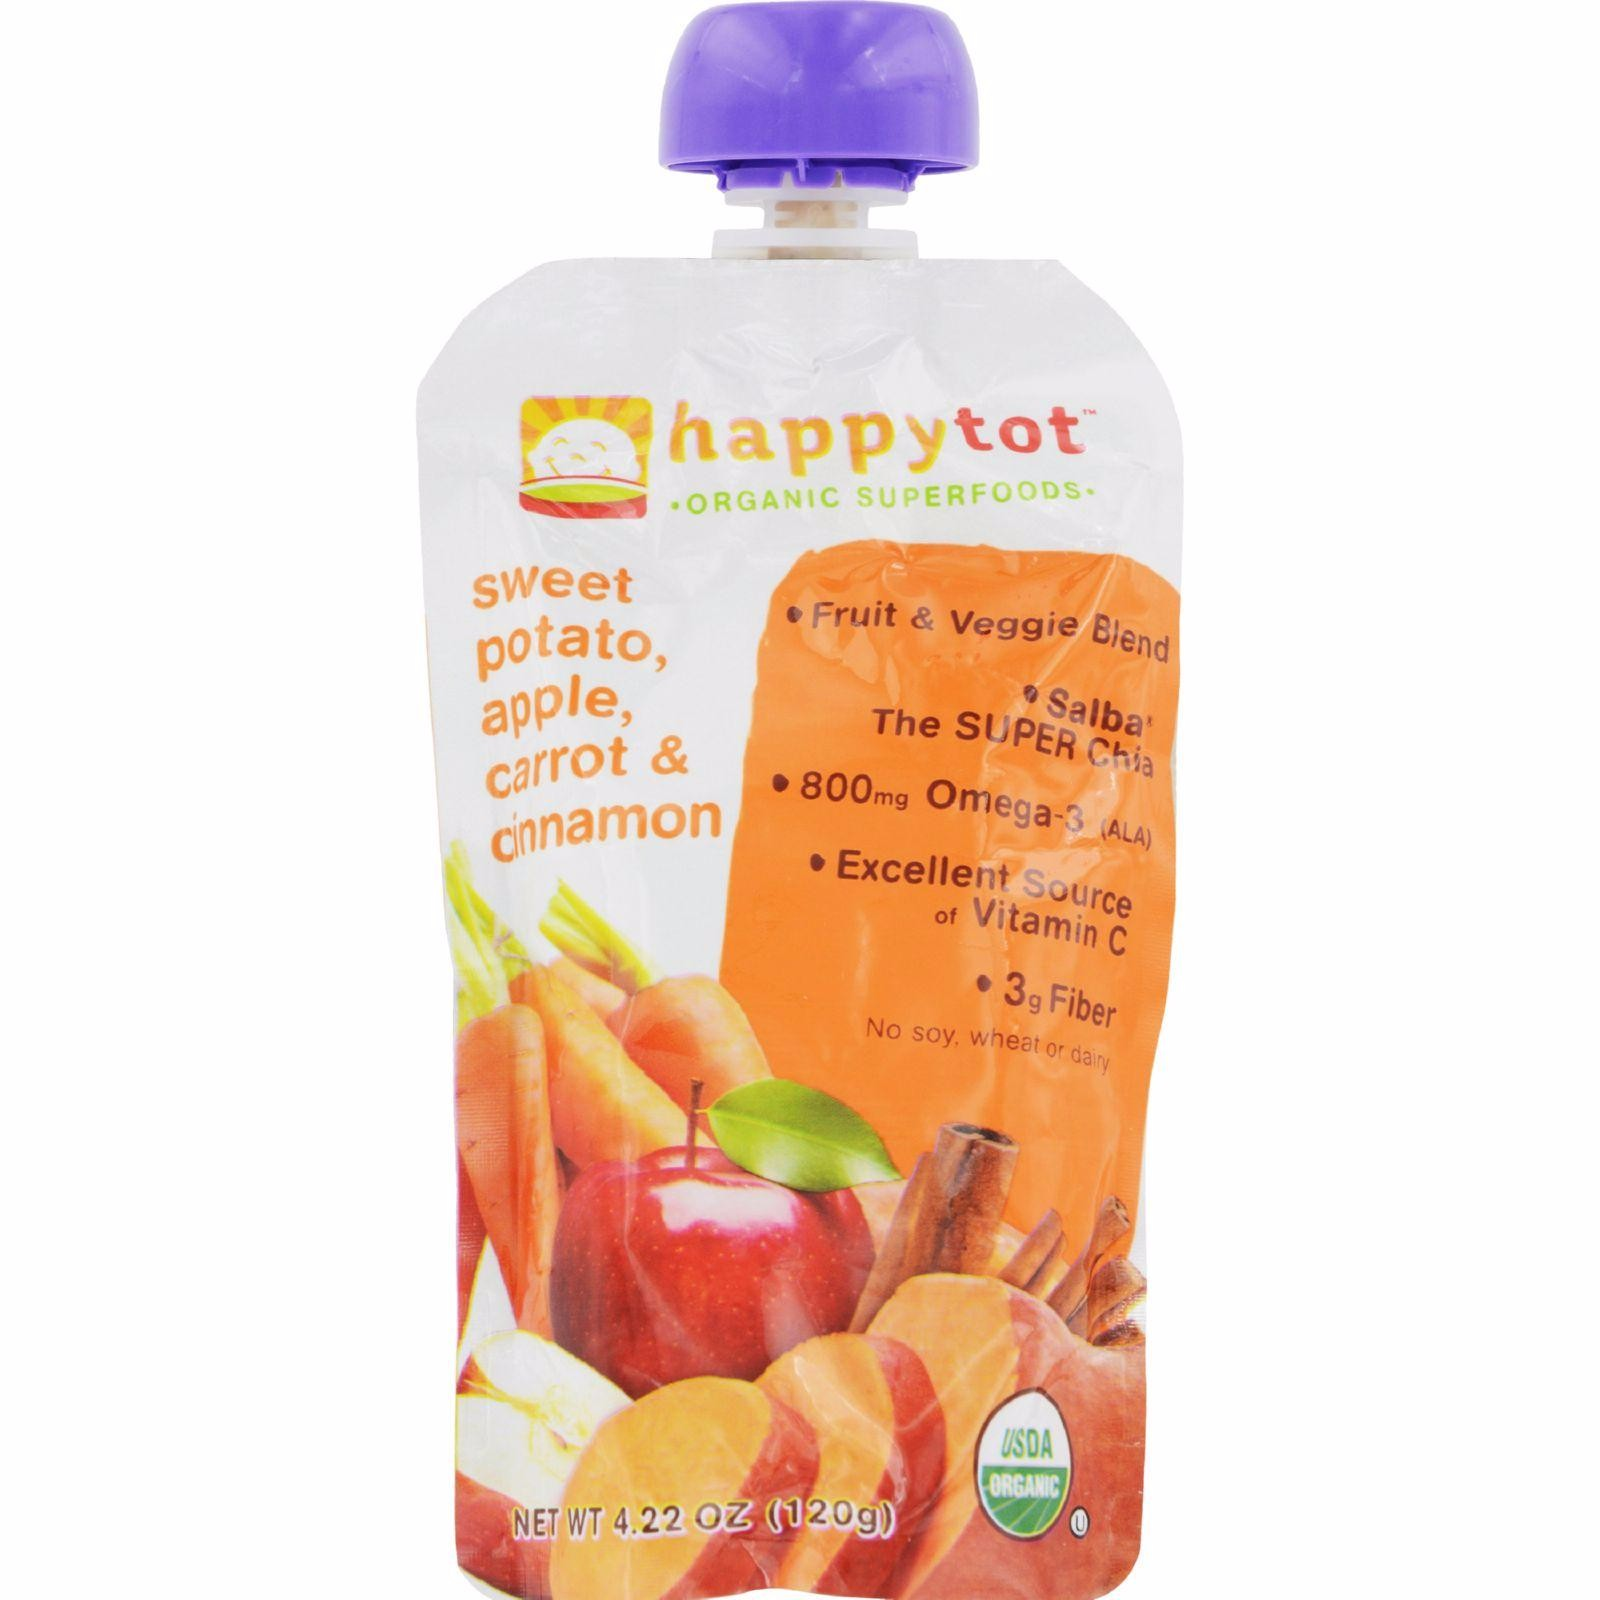 Happy Baby Happytot Organic Superfoods Sweet Potato Apple Carrot And Cinnamon - 4.22 Oz - Pack of 16